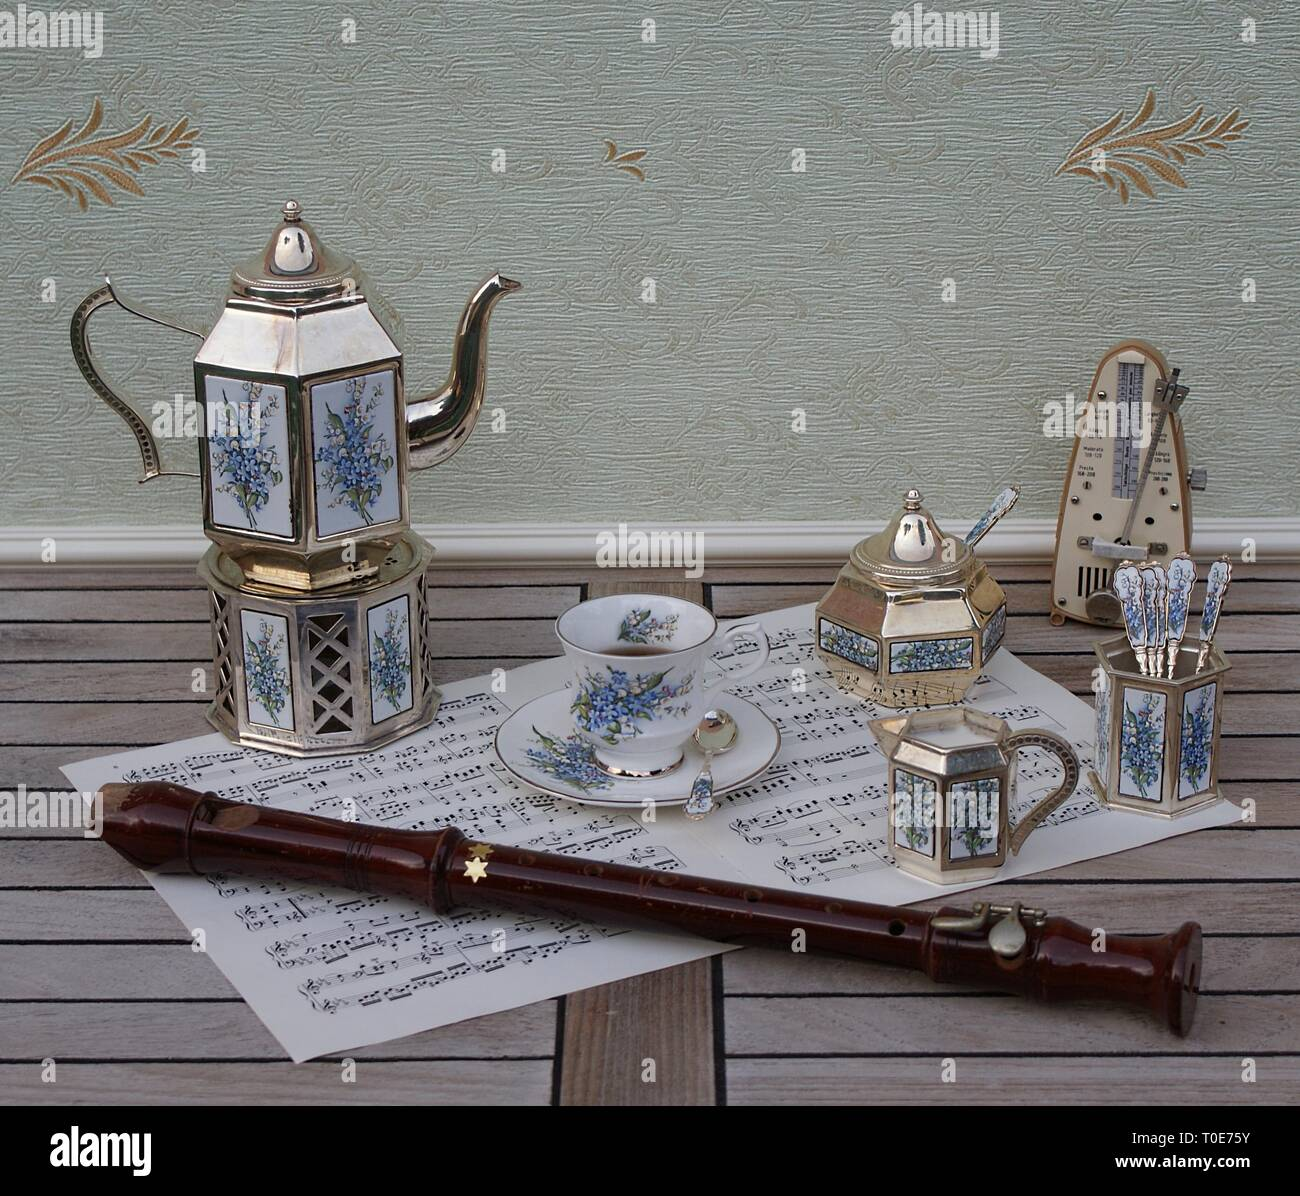 English tea set, silver-plated teapot, spoon vase, cream jug, sugar bowl and sugar spoon, metronome for music and a block flute on a sheet of music - Stock Image